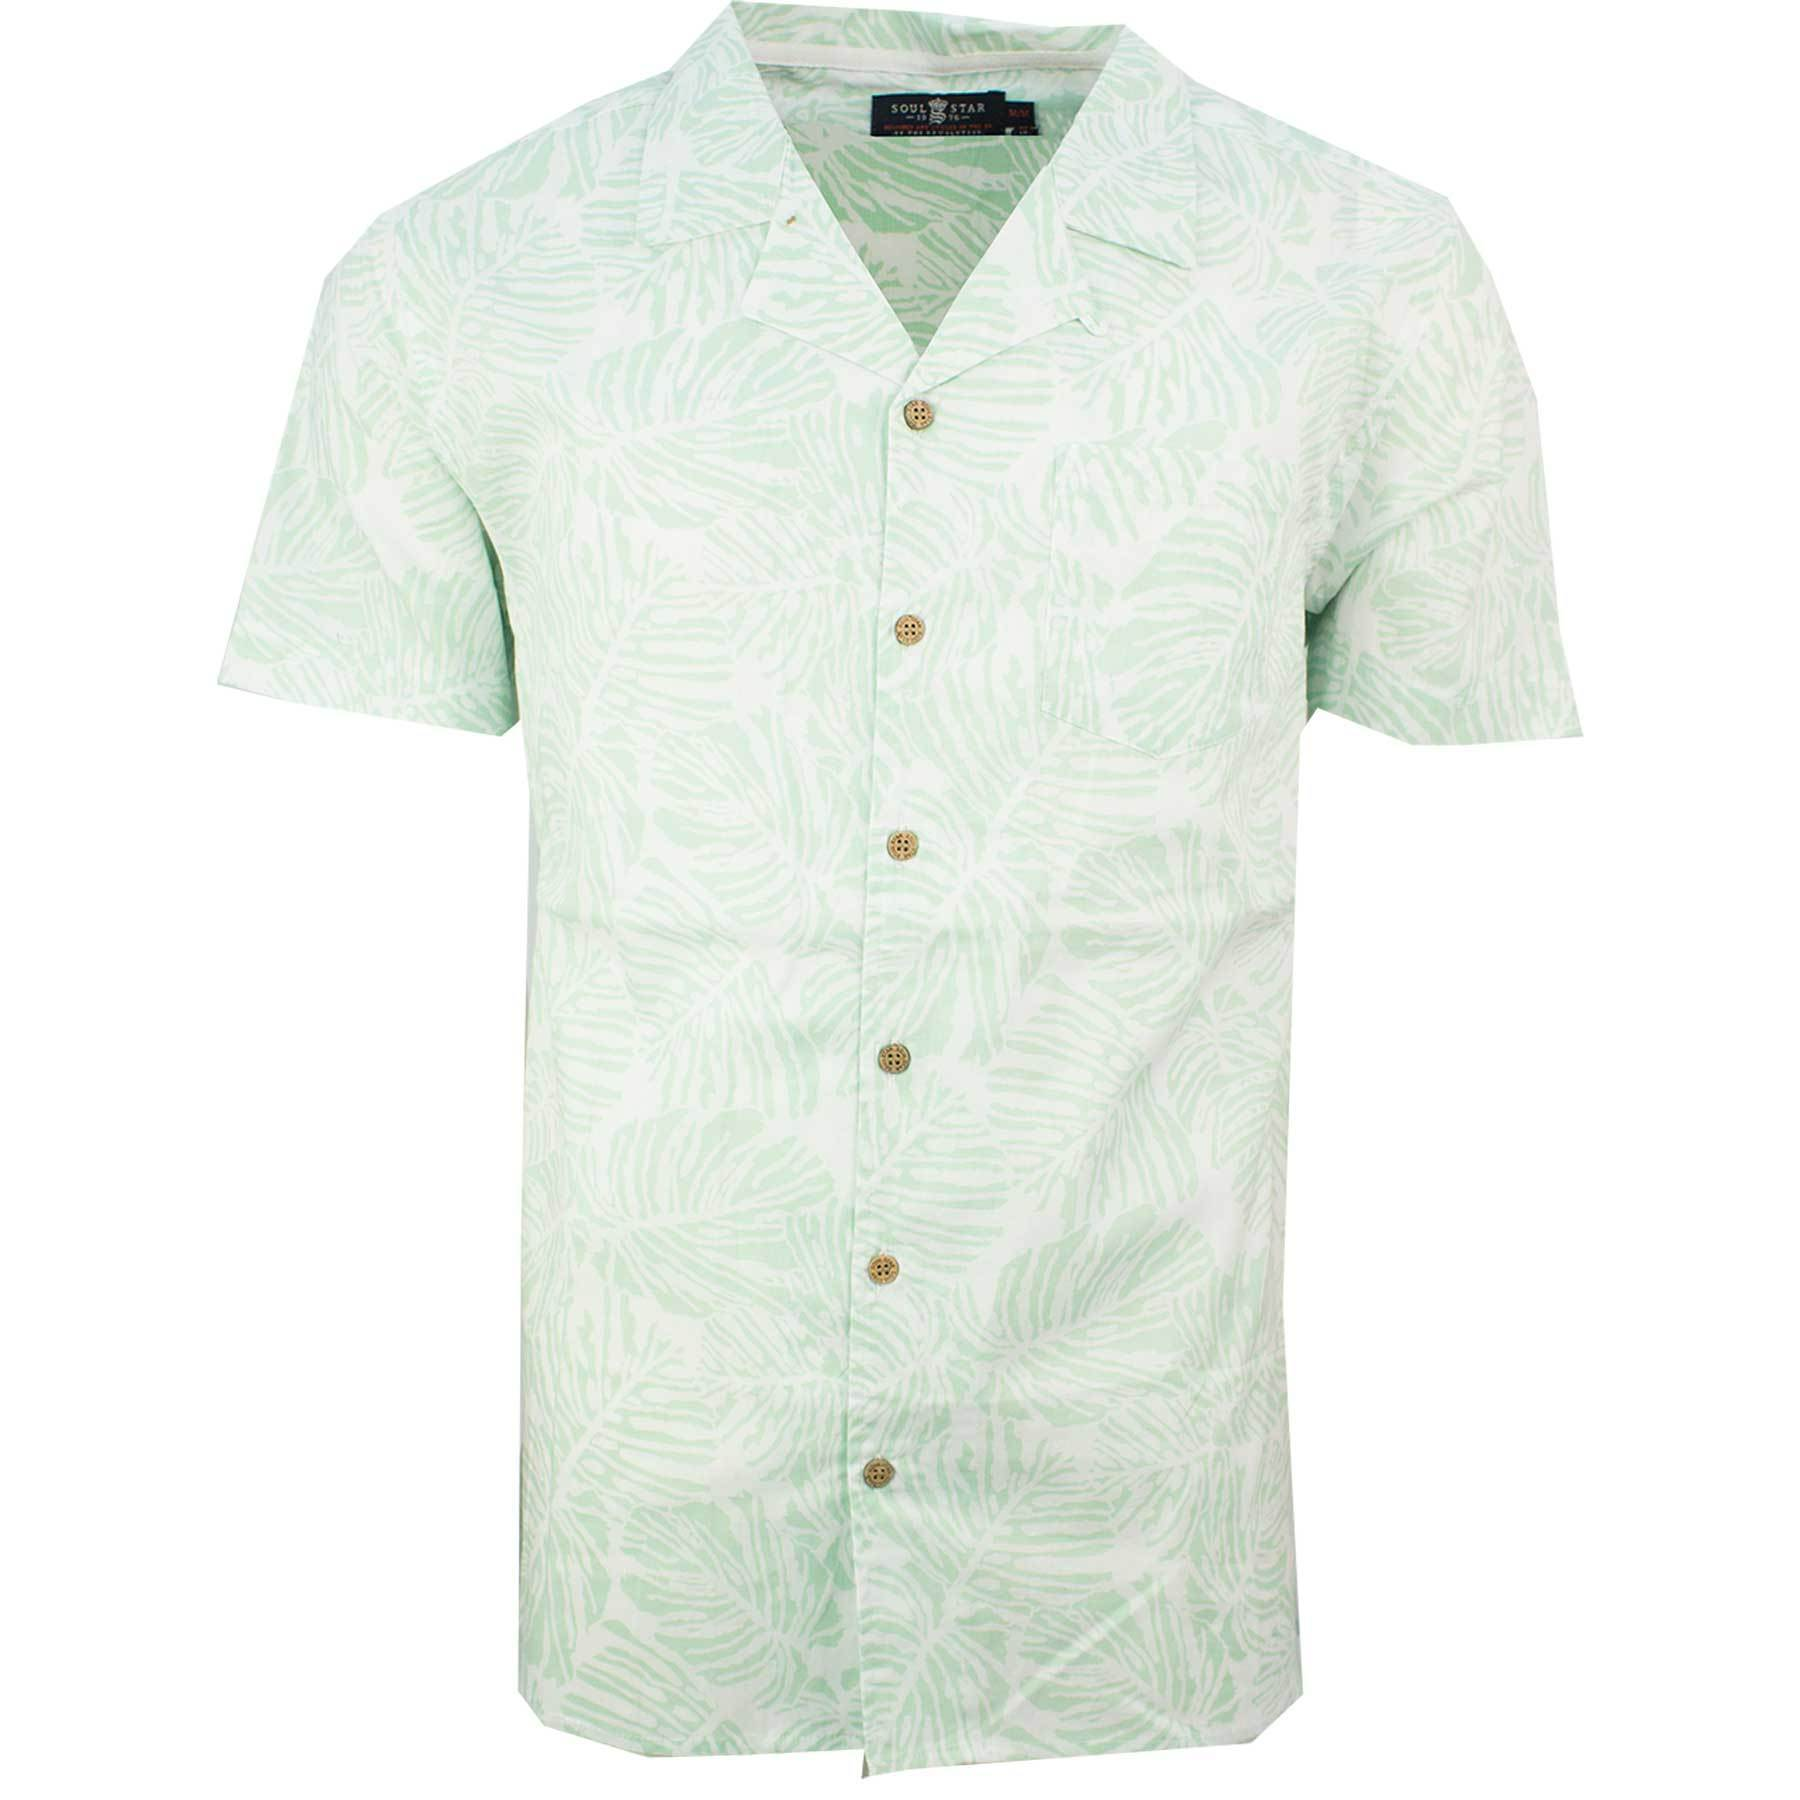 Hawaiian Holiday Shirt Mint